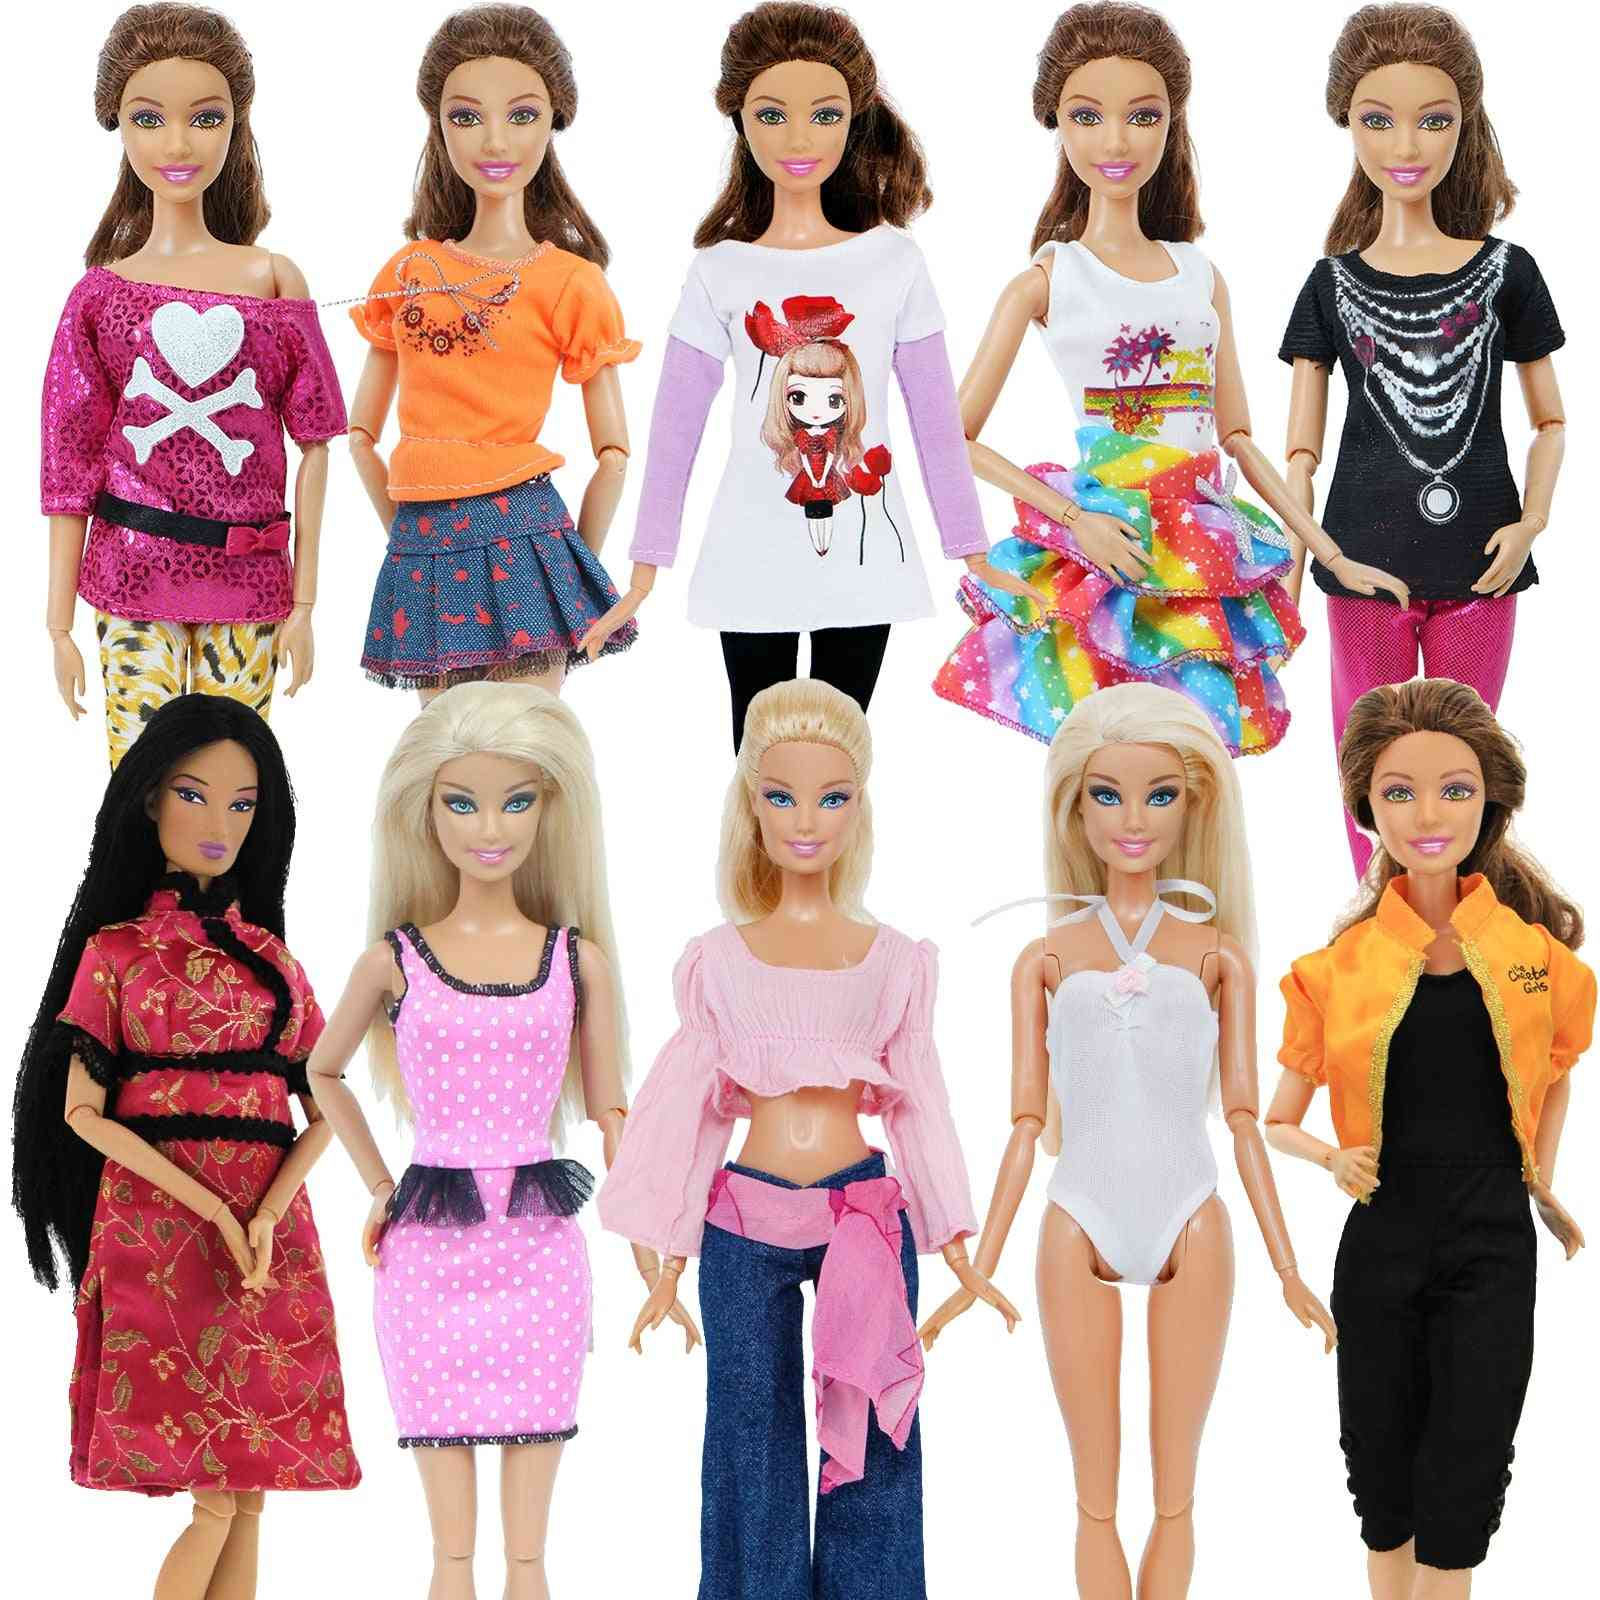 Fashion Outfit Daily Casual Wear, Skirt Clothes For Barbie Doll